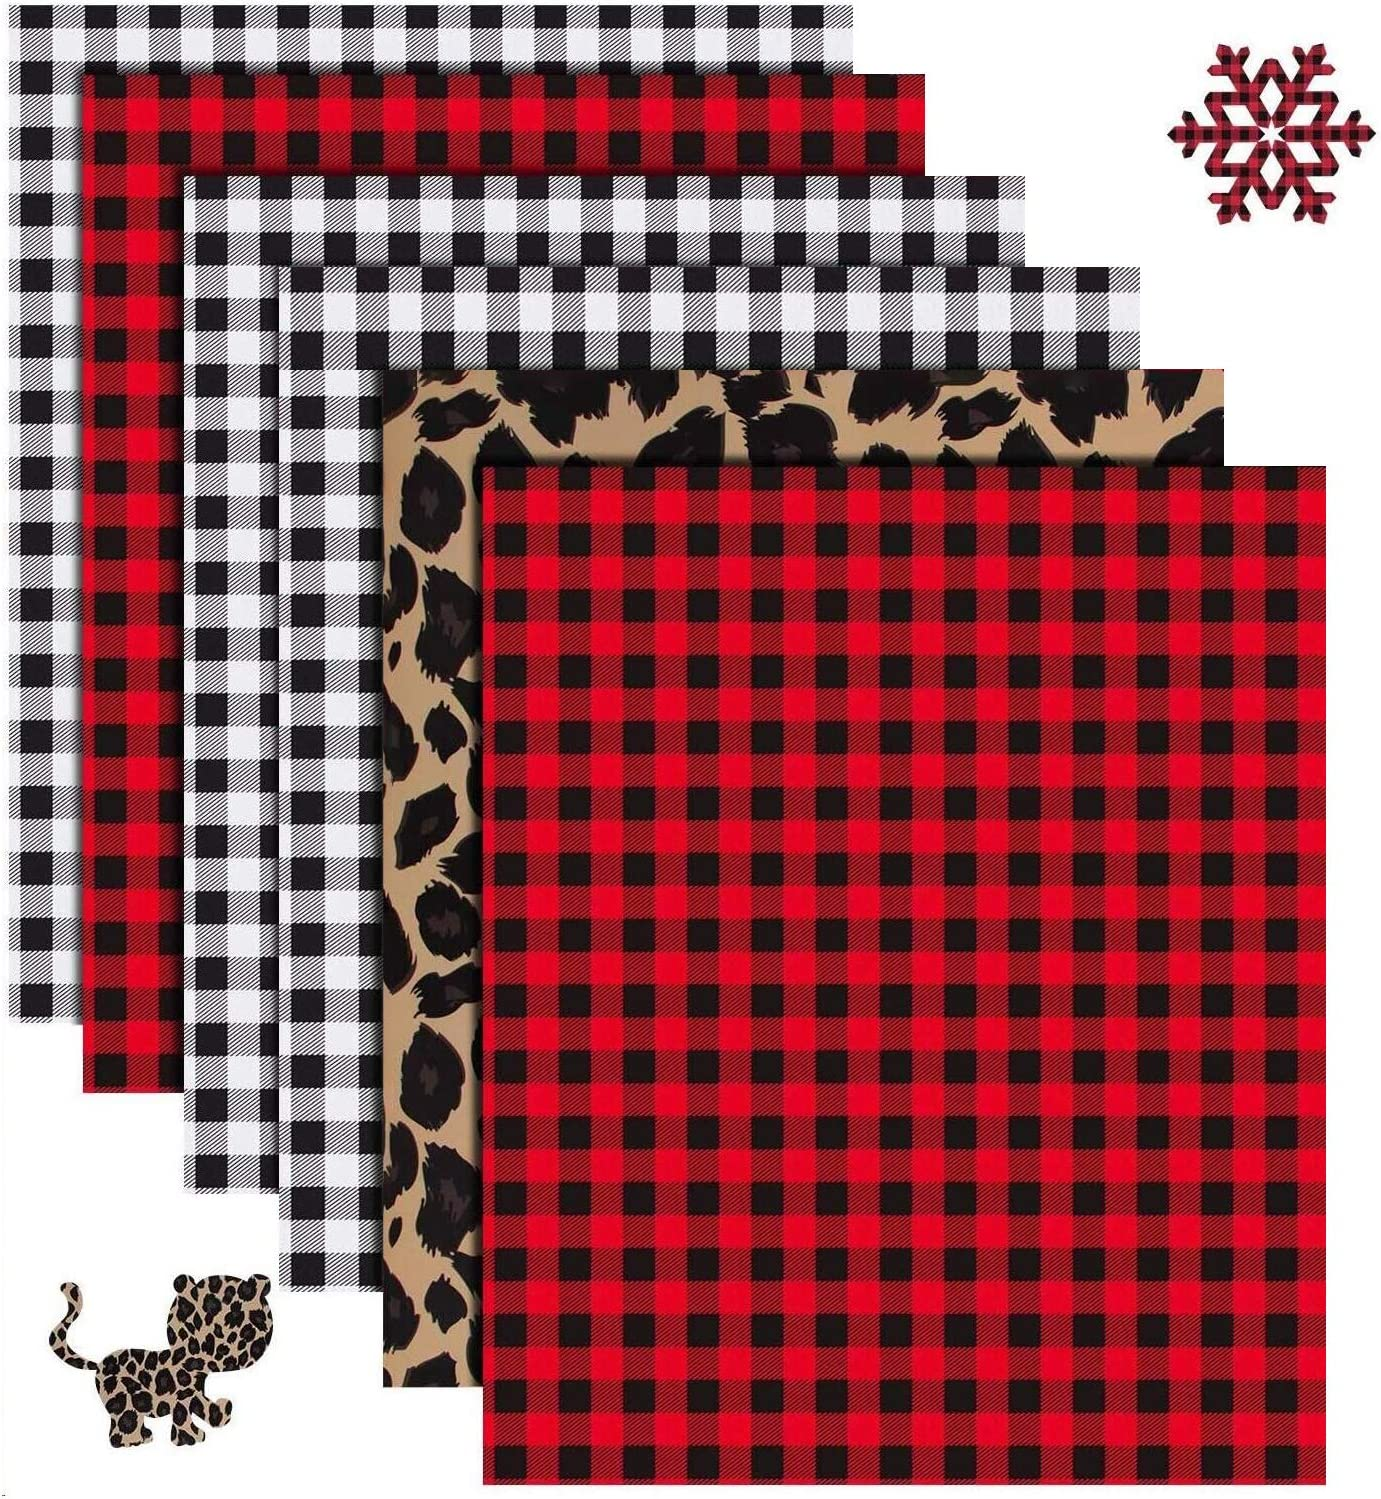 Red, White-Black, Green, Leopard 8 Sheets Christmas Buffalo Plaid Iron-on Vinyl HTV Assorted Leopard Pattern Check Heat Transfer Vinyl Heat Transfer Vinyl for T-Shirts Fabric Craft 12 x 10 Inch